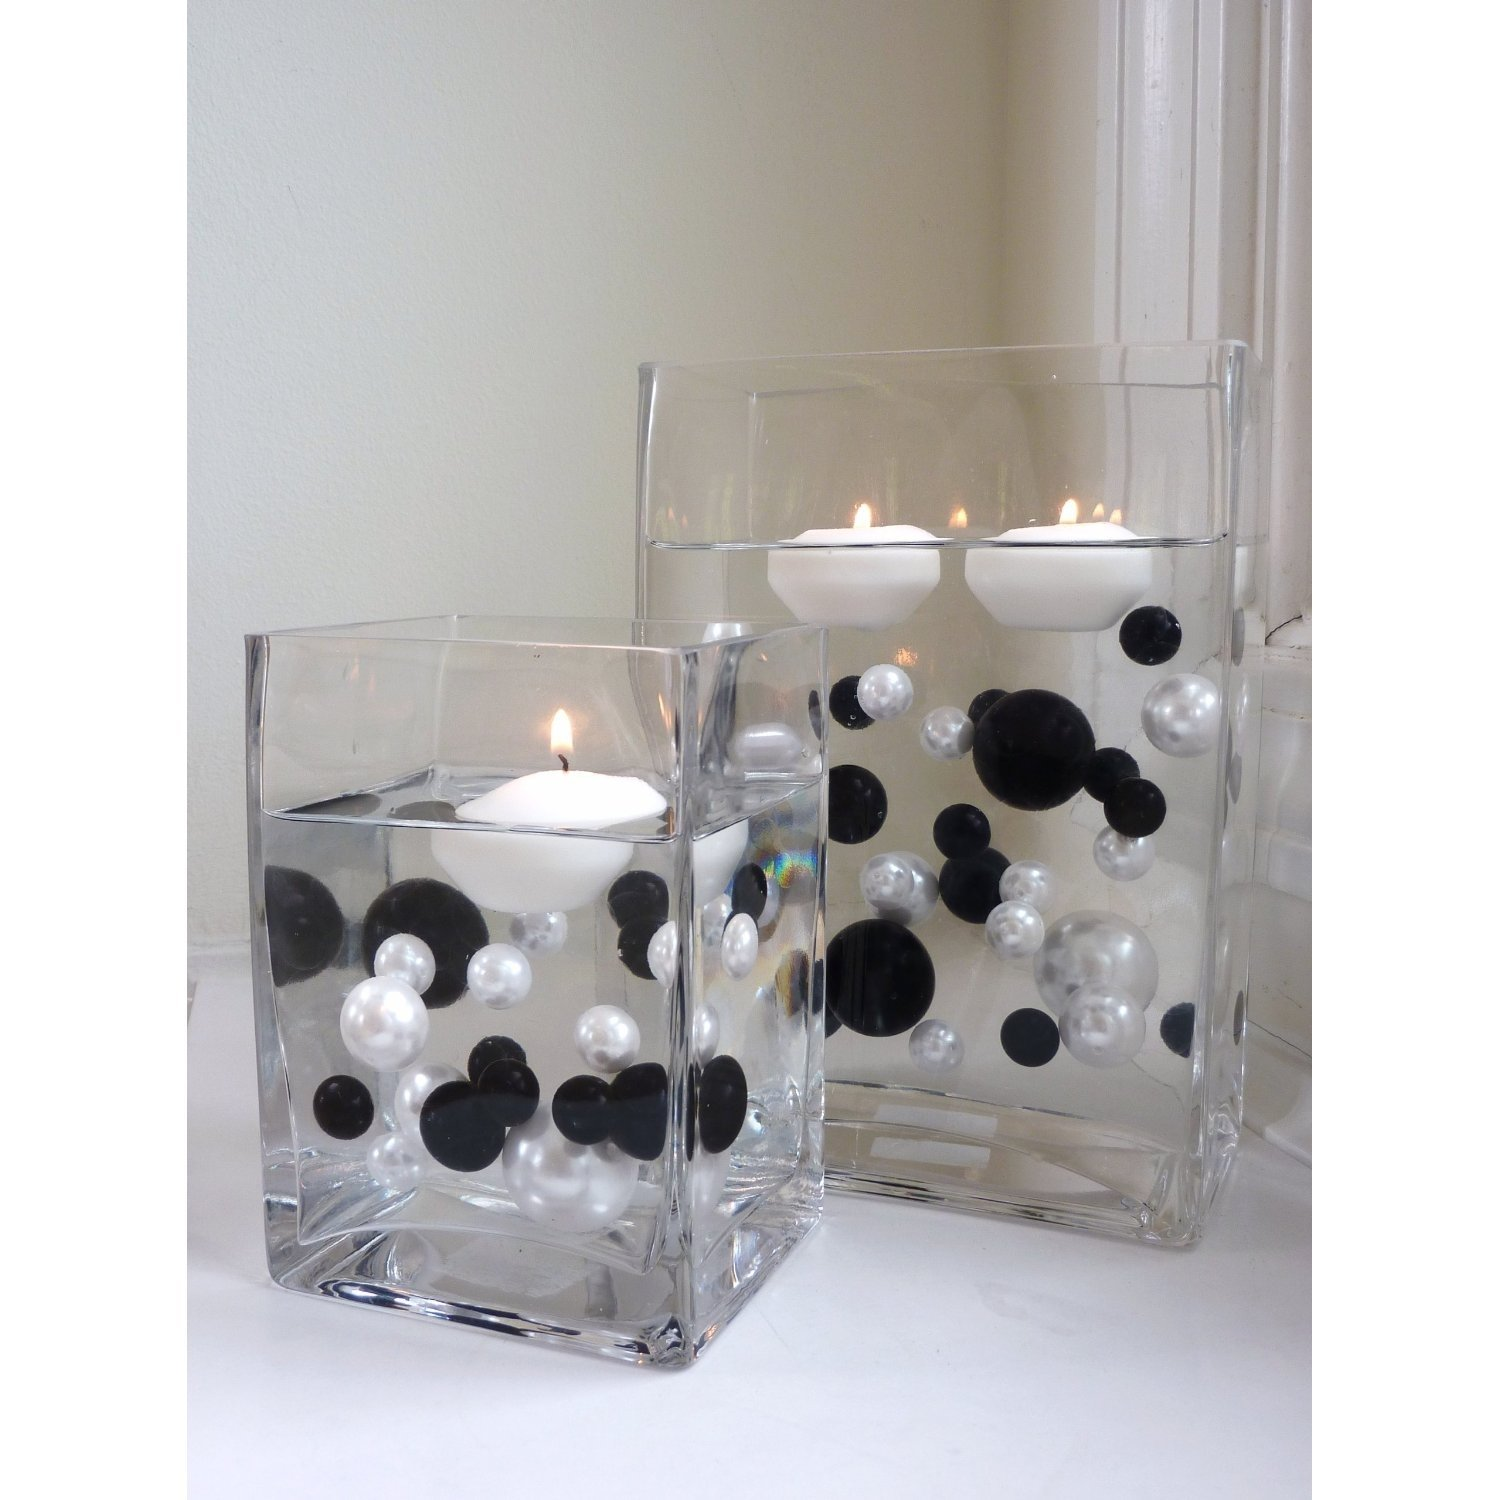 10 Awesome Black And White Centerpiece Ideas black and white wedding centerpiece idea trendy mods 2021